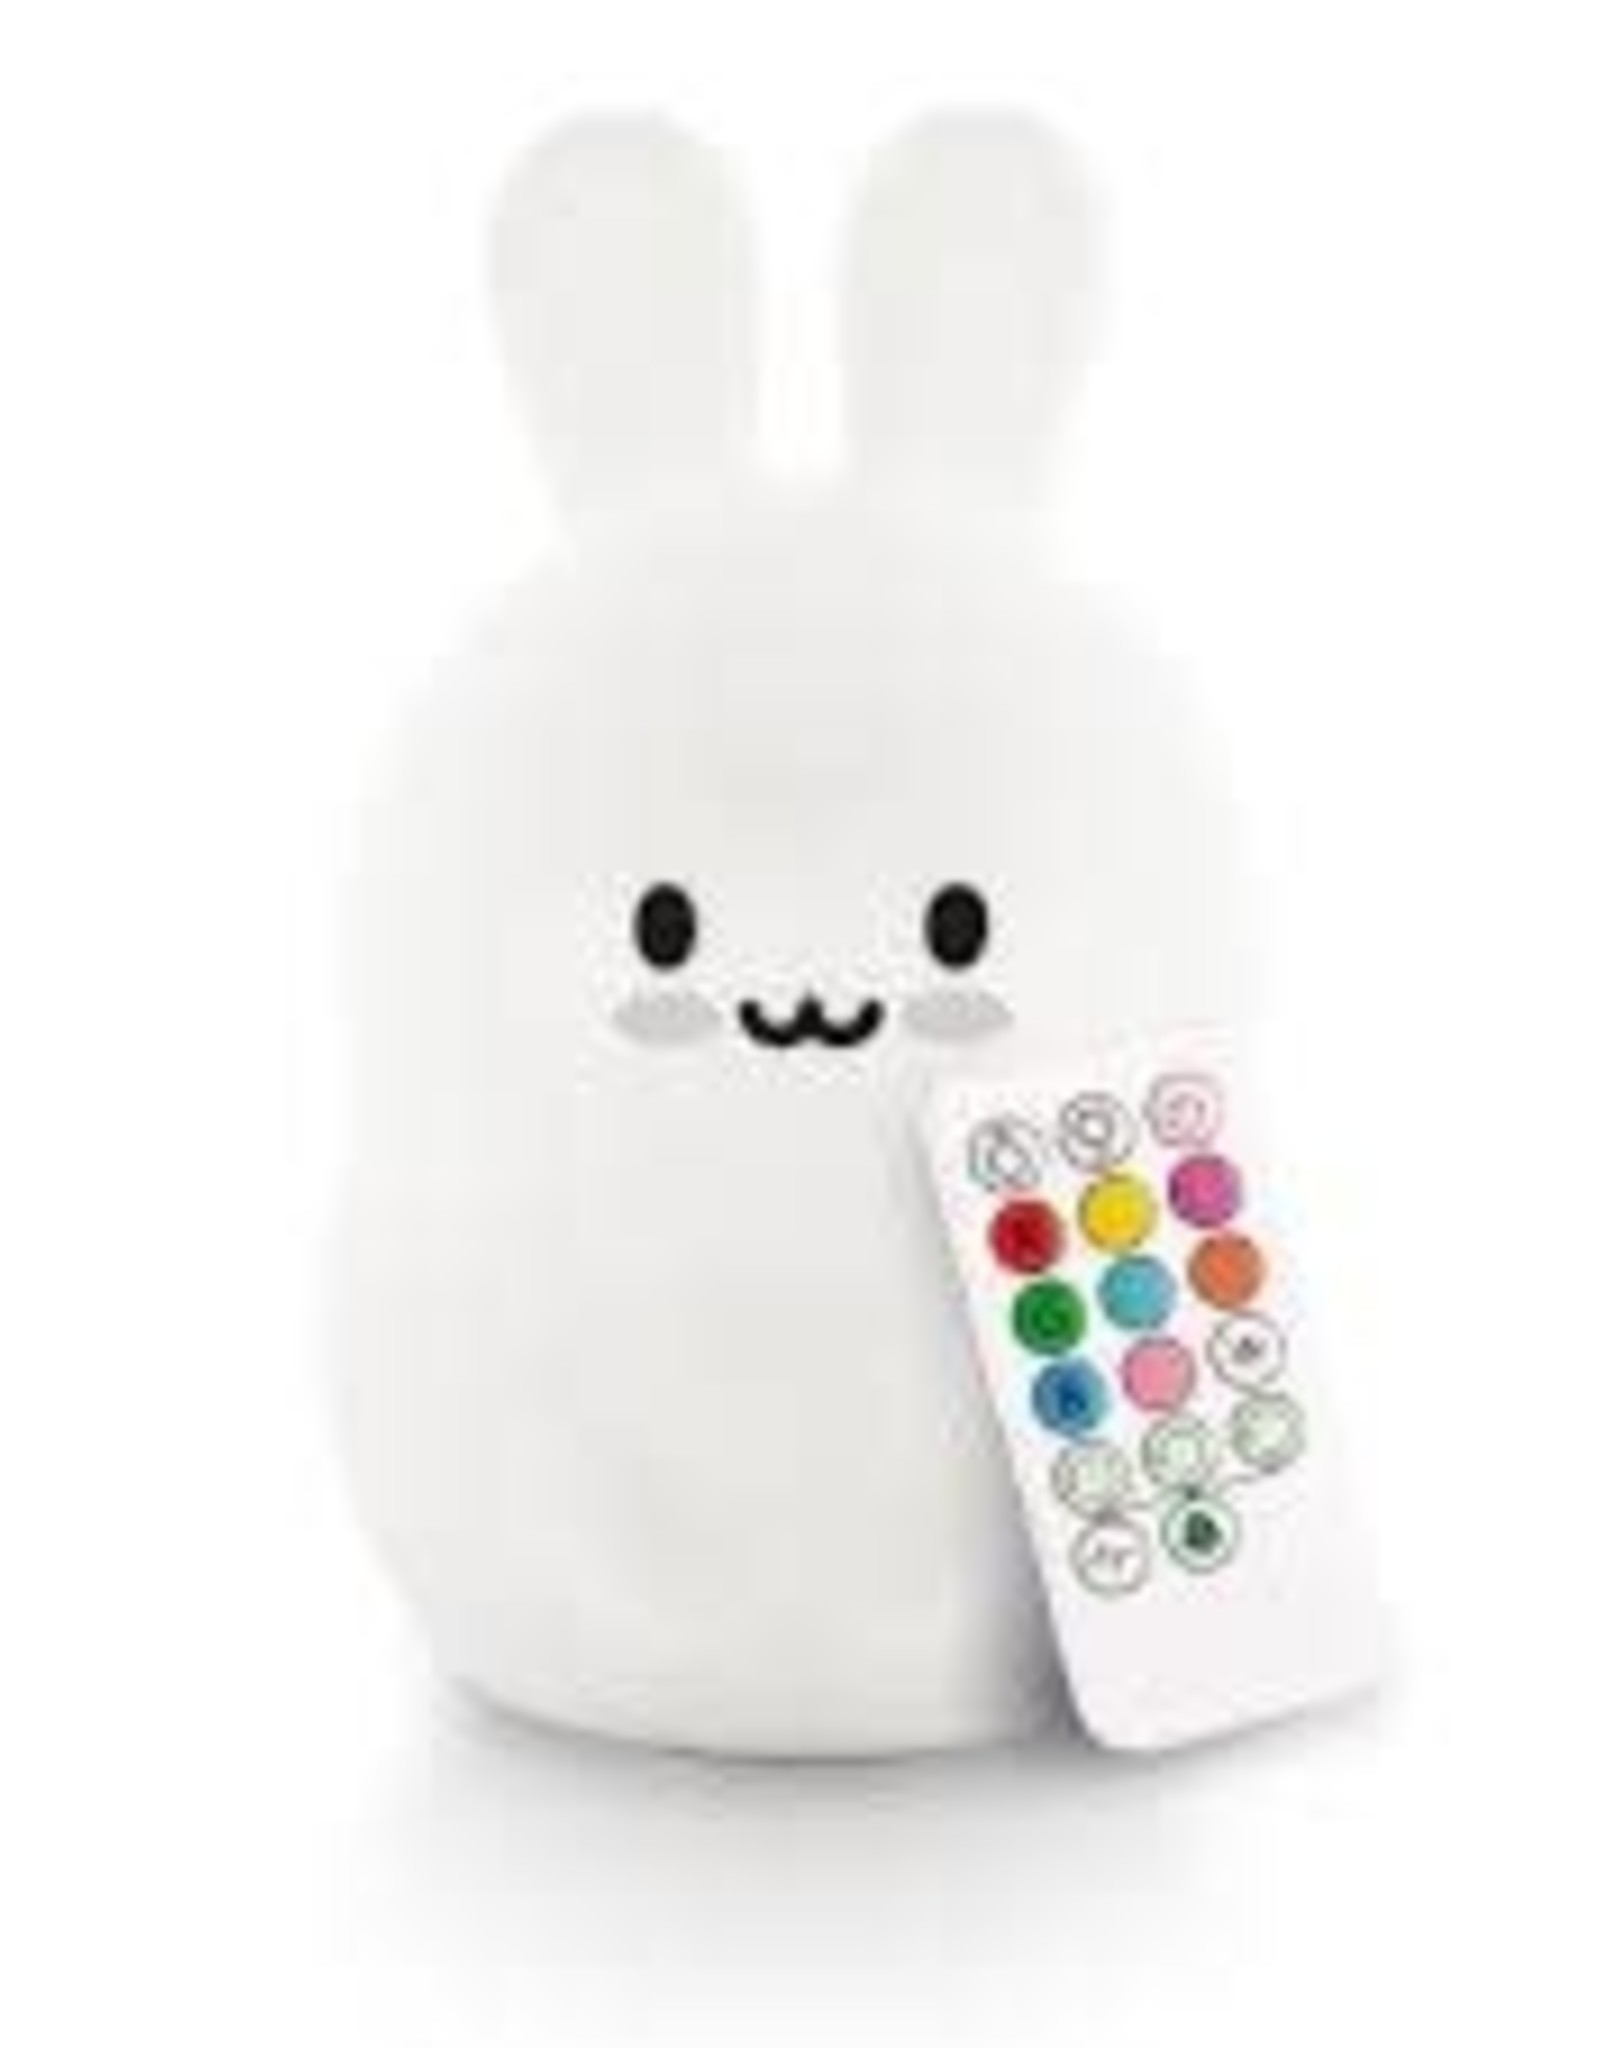 LUMIEPETS BUNNY WITH REMOTE